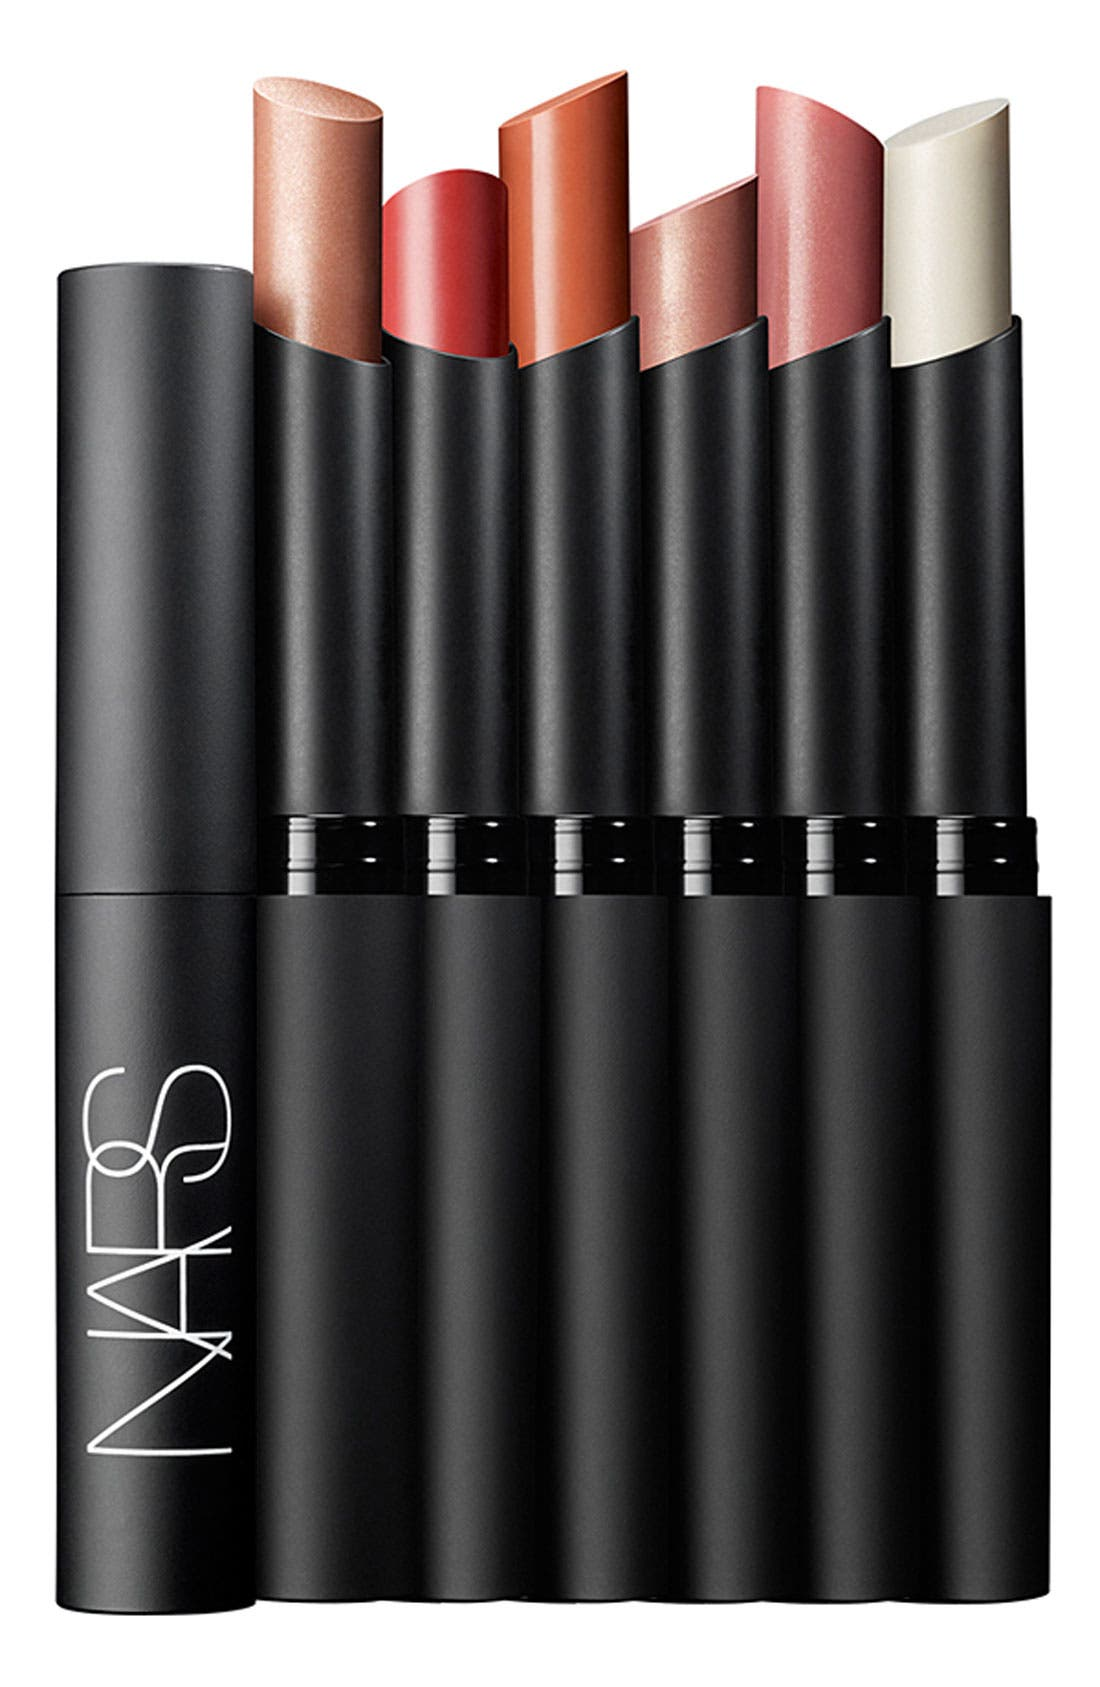 NARS,                             Pure Sheer Lip Treatment SPF 15,                             Alternate thumbnail 2, color,                             000